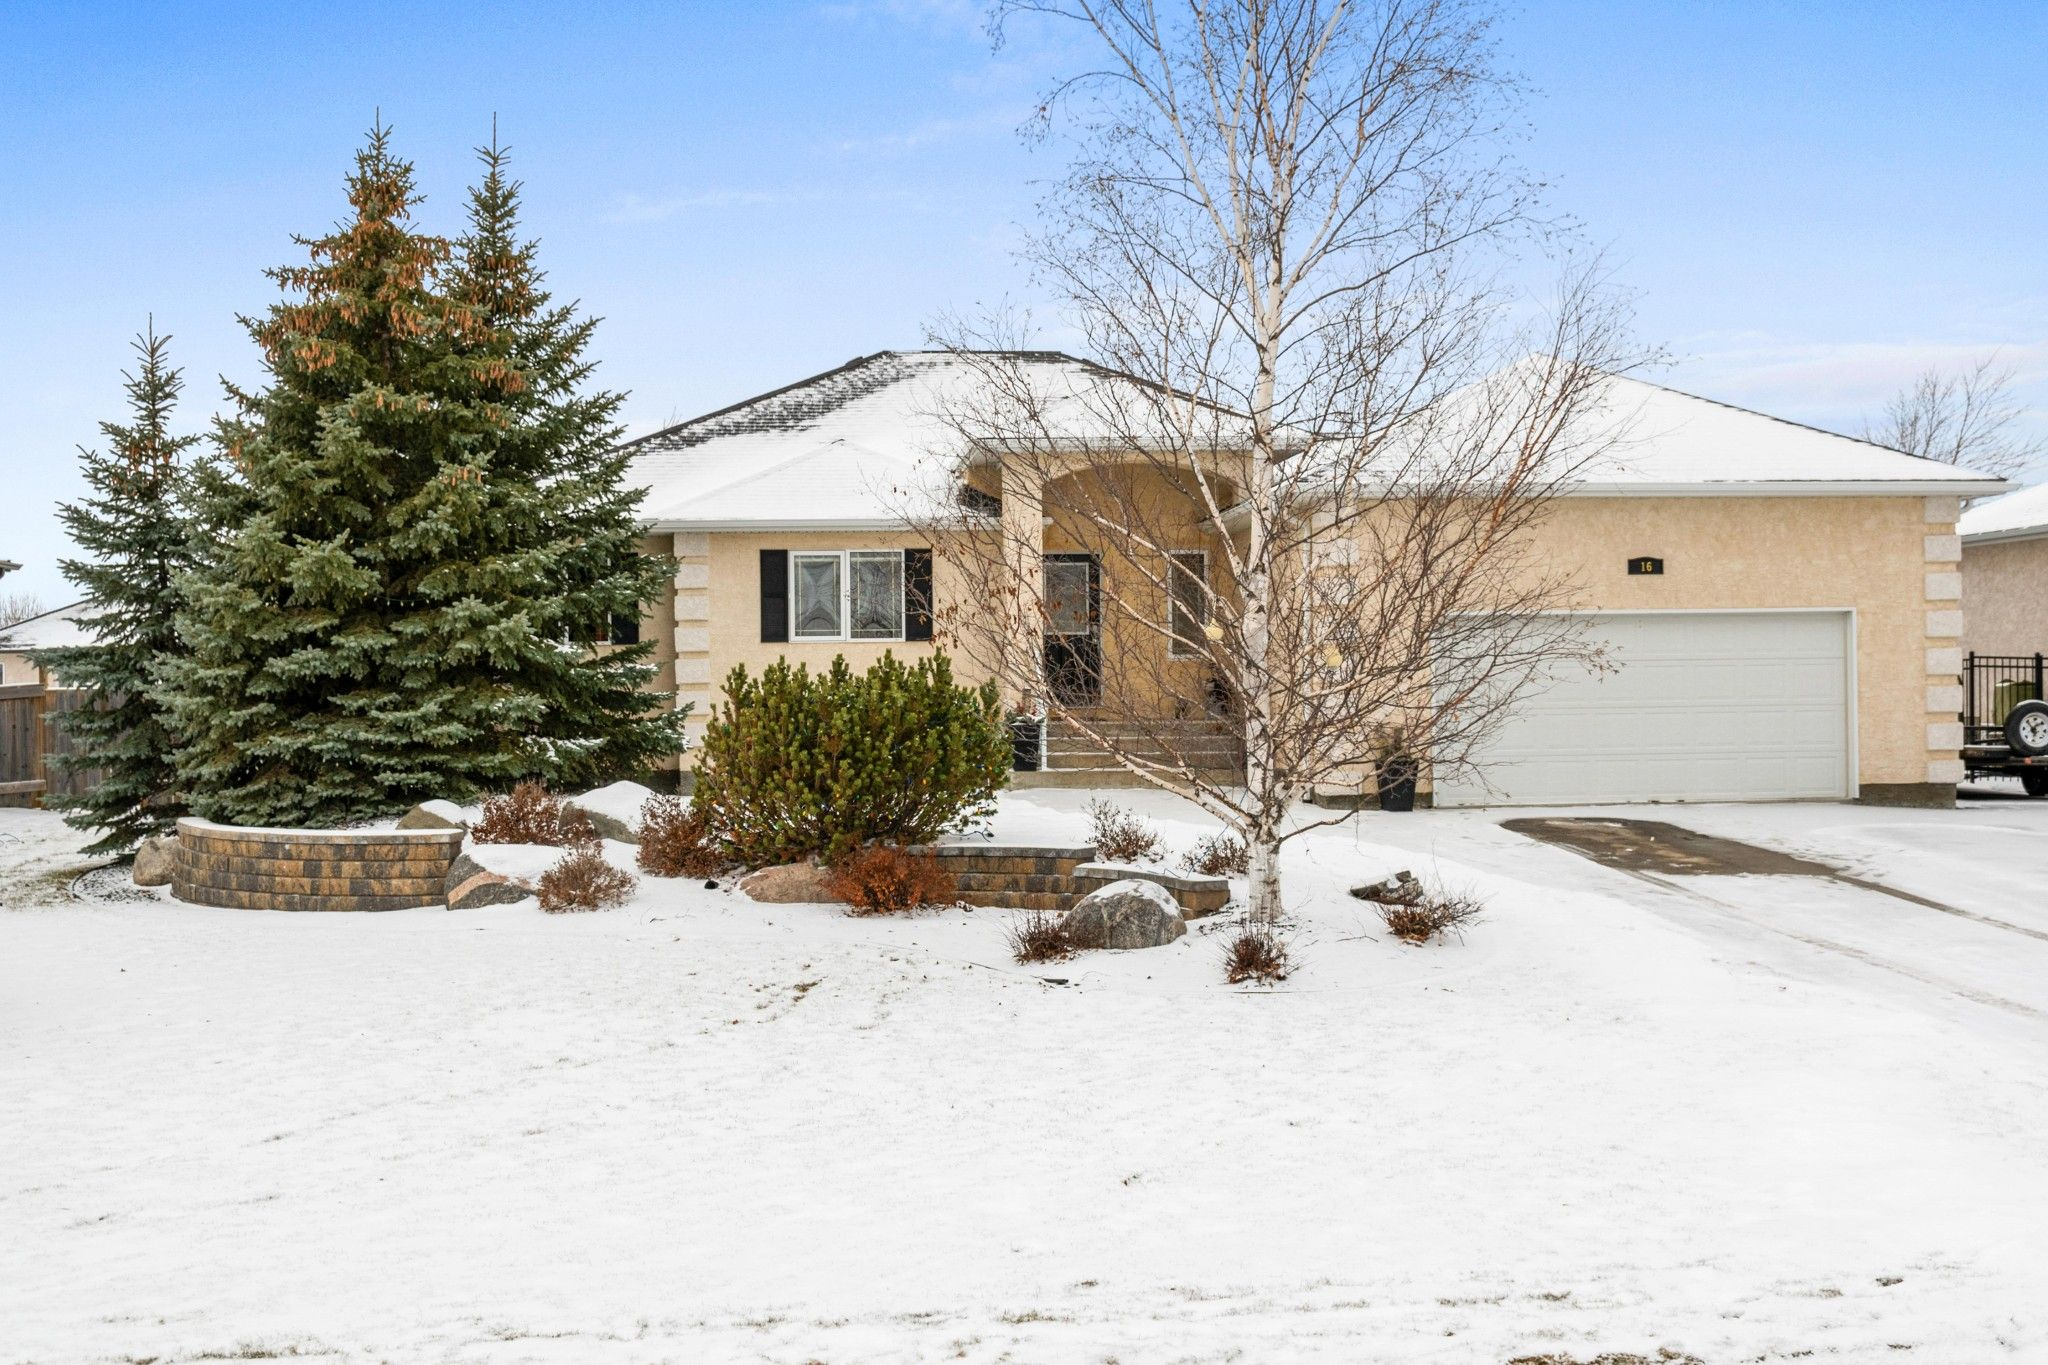 IMMACULATE custom built 1787 sf bungalow (05), 3 bedrooms up, 2 bedrooms in fully finished lower level in Oakbank!